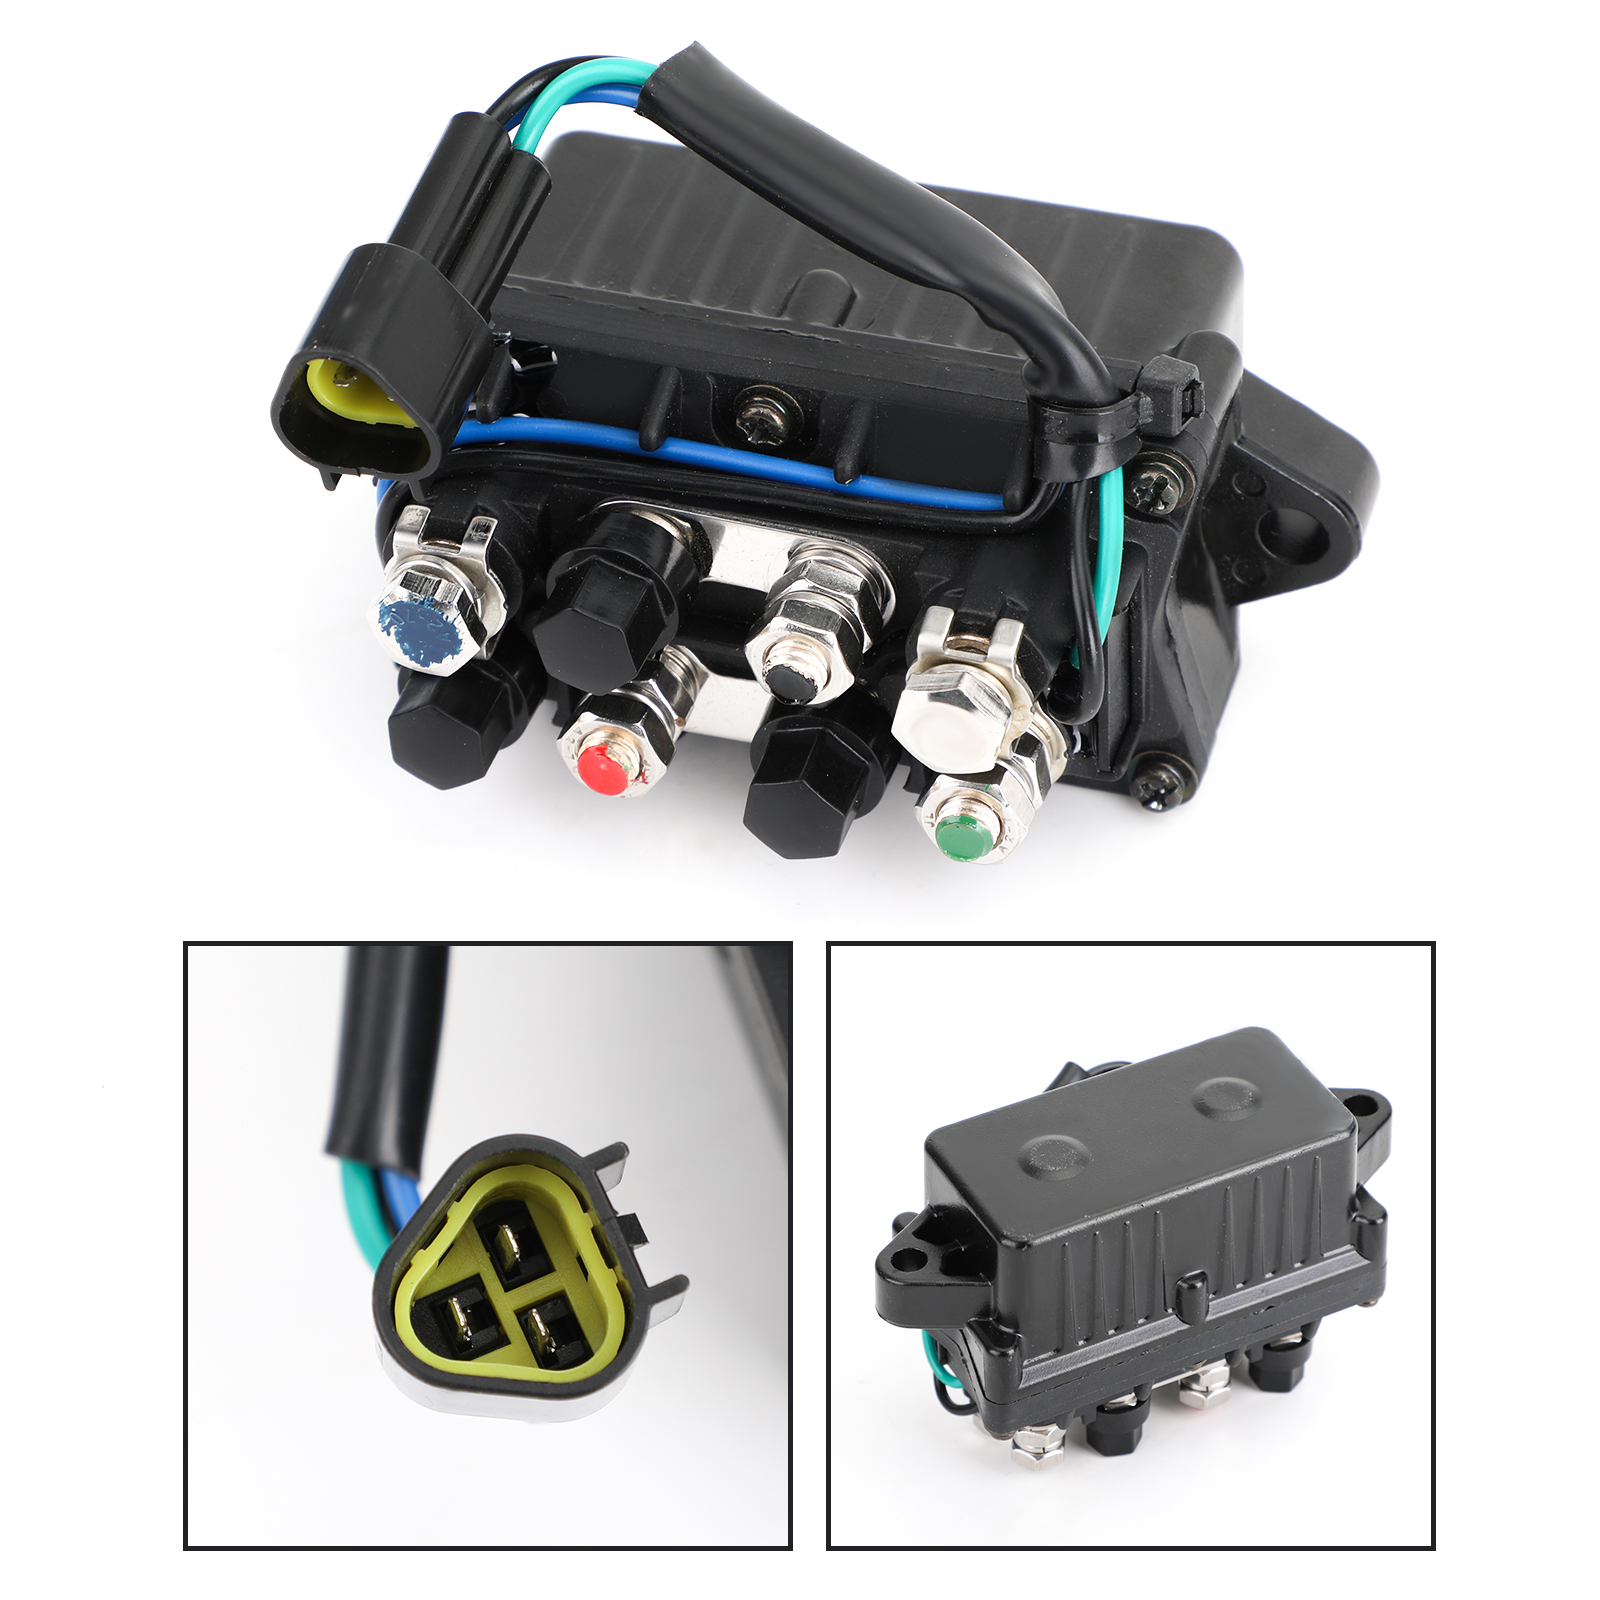 Trim /& Tilt Relay Fit For Yamaha 30-90hp OUTBOARD ENGINE Repl.#6H1-81950-00-00